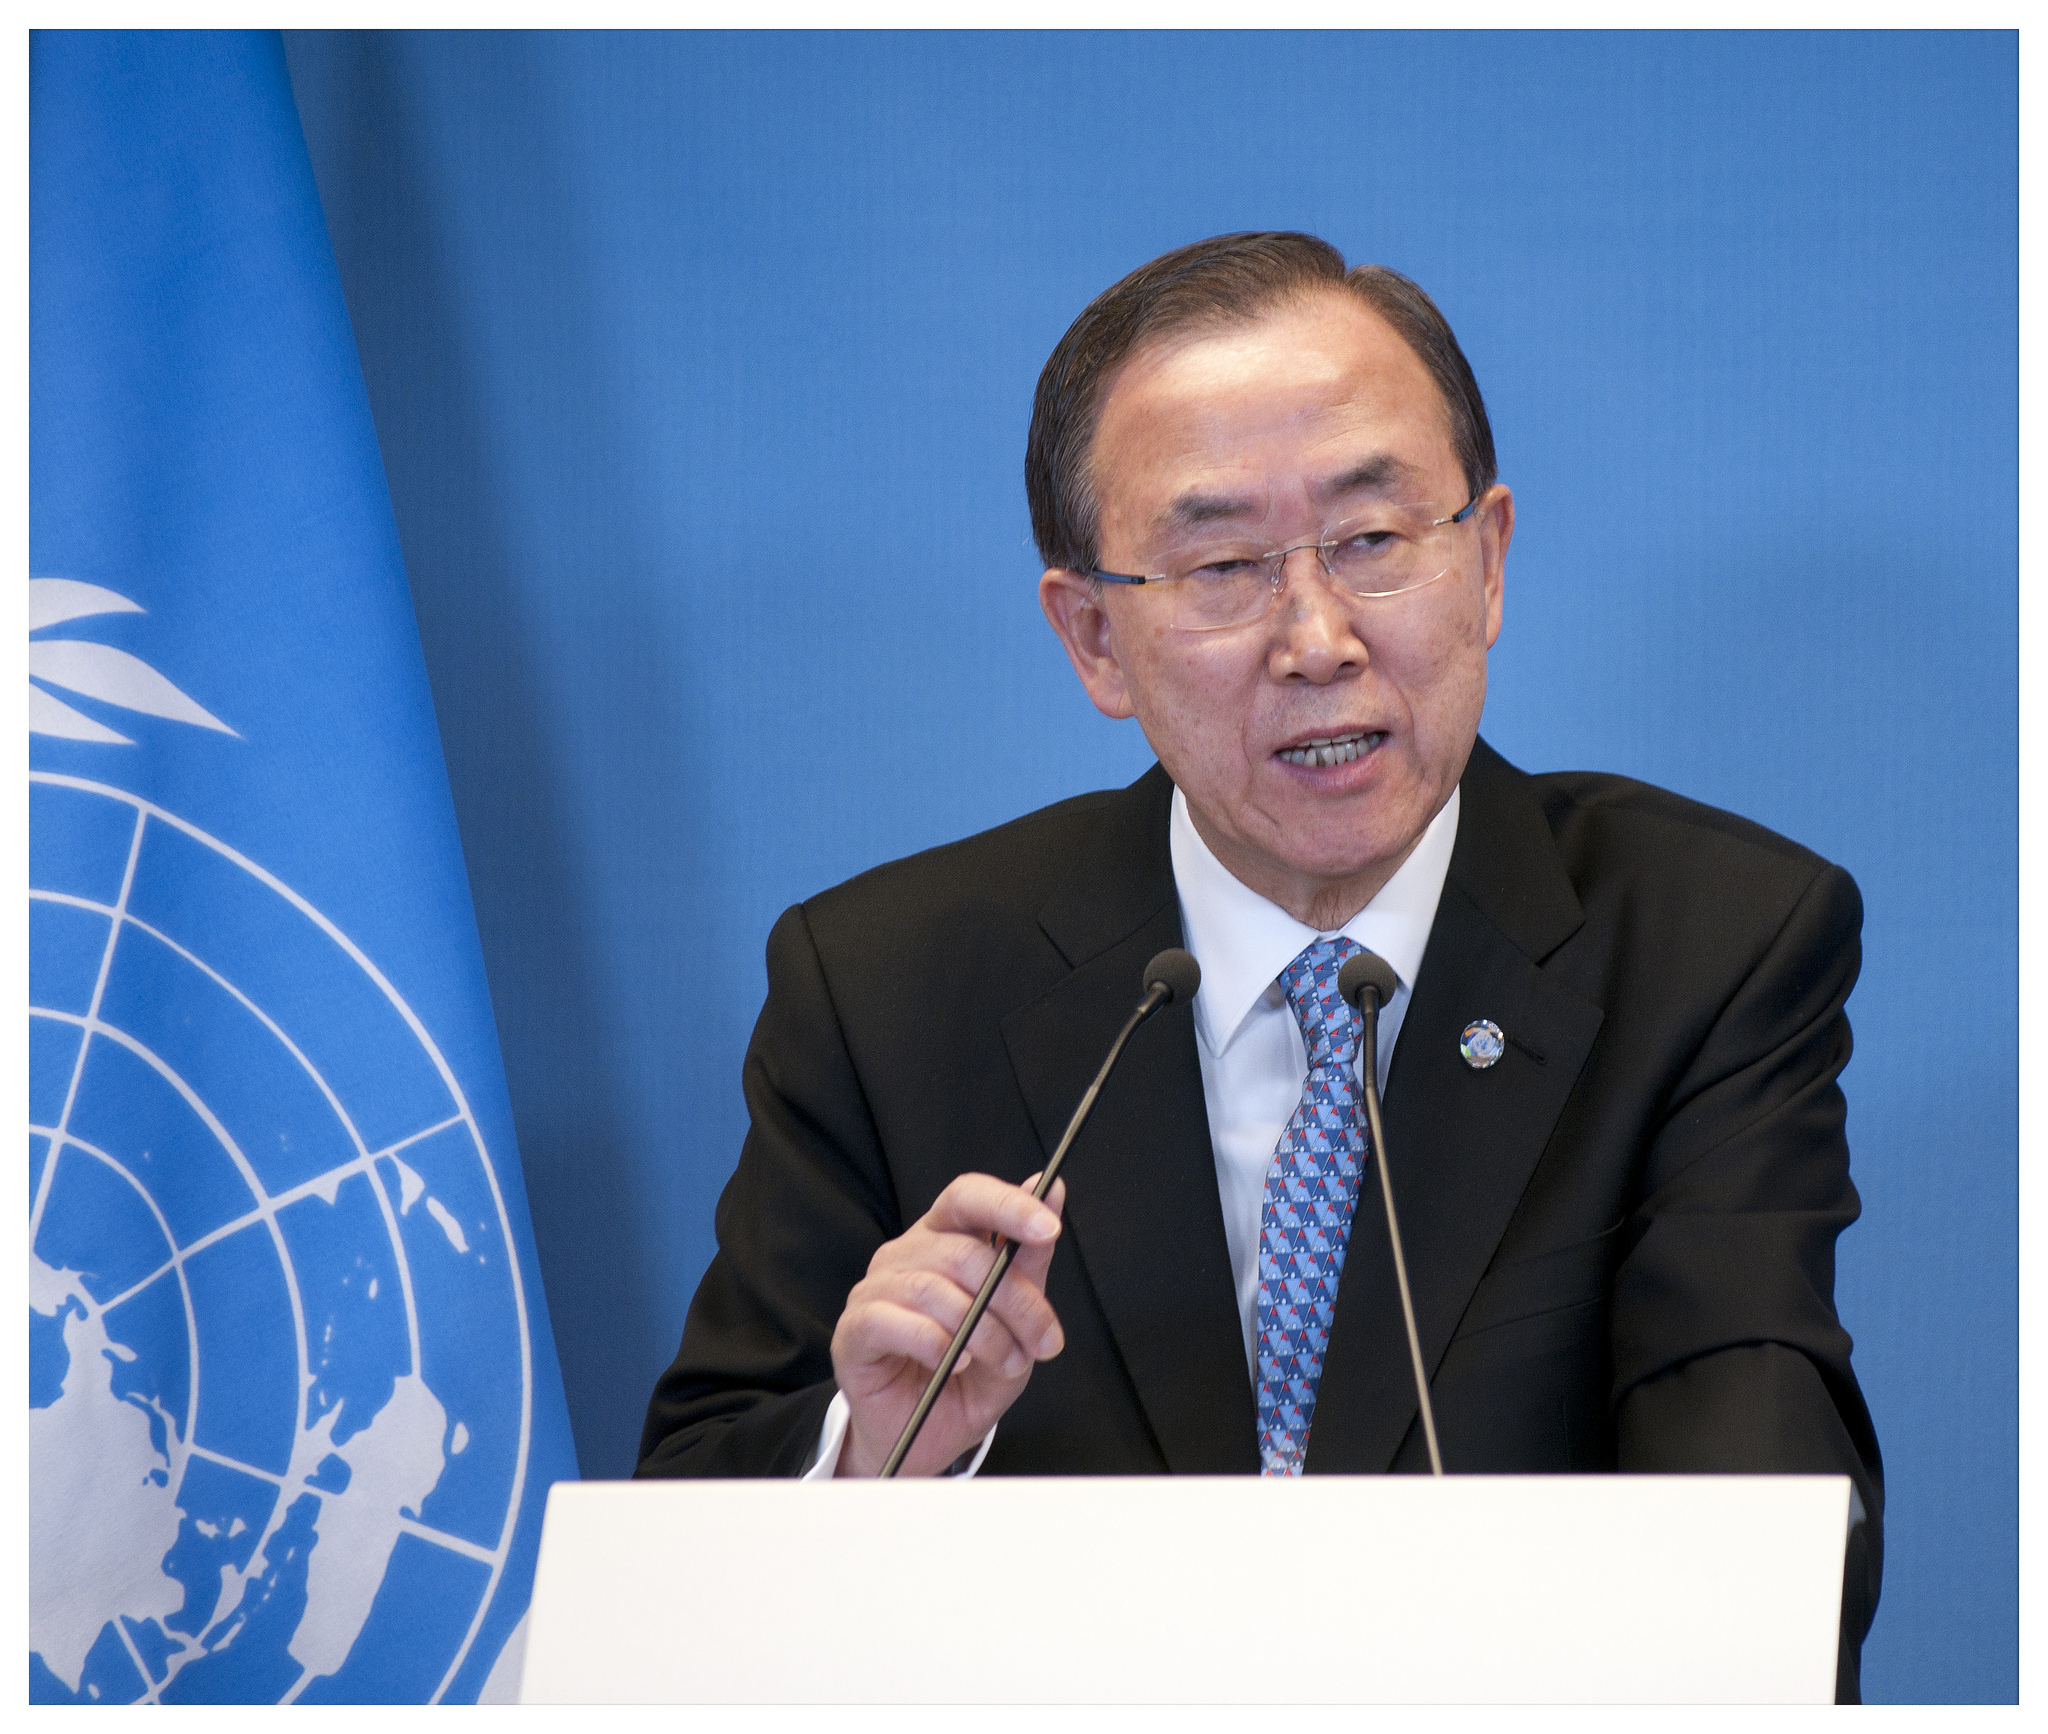 United Nations Secretary General Ban Ki-moon delivers a speech.By Ministerie van Buitenlandse Zaken.